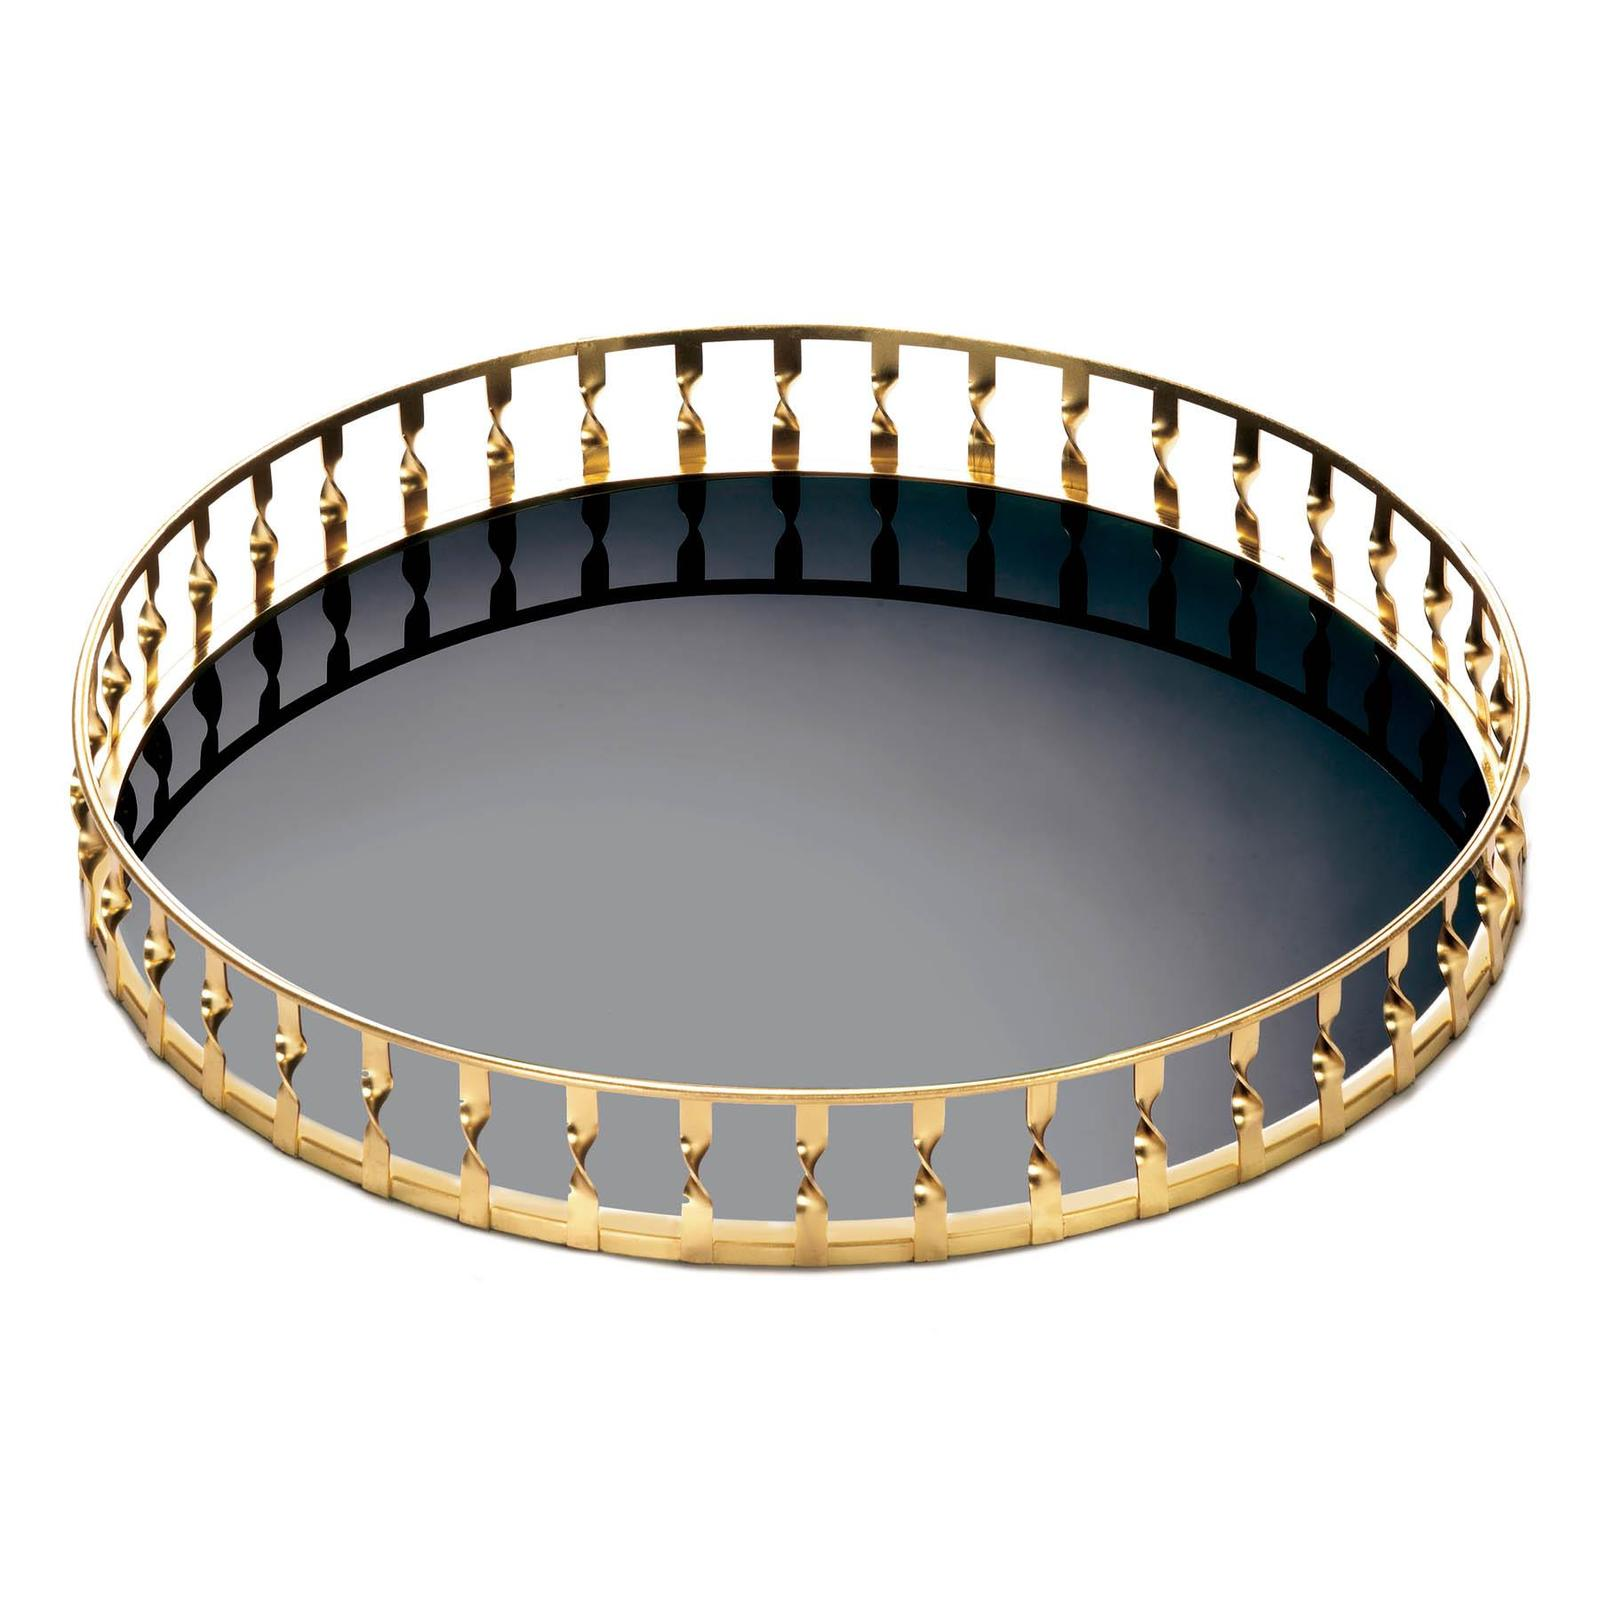 Contemporary Gold Twist Mirrored Round Tray Decorative Table or Vanity Accent